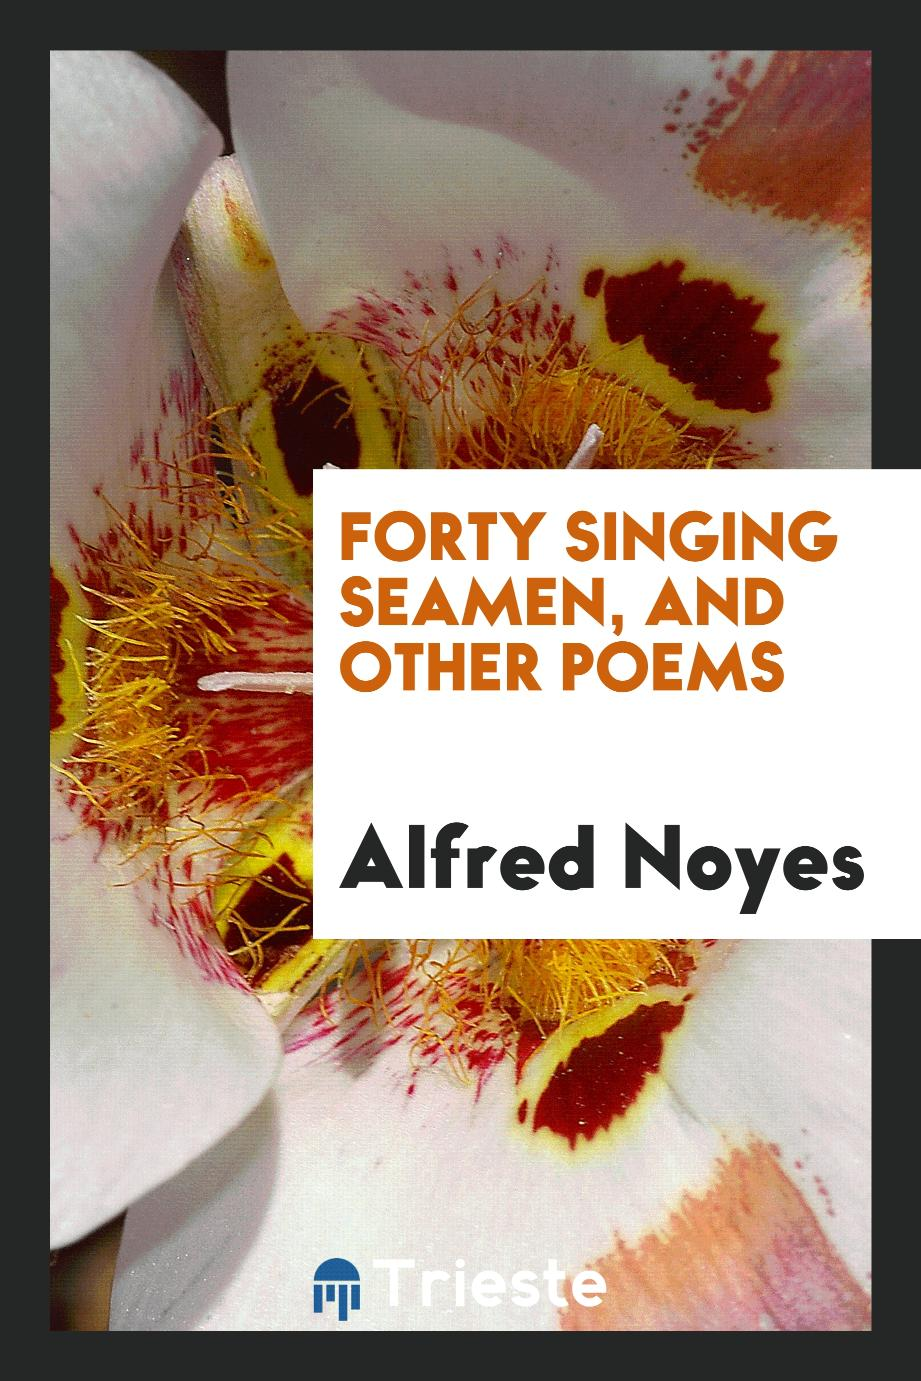 Forty singing seamen, and other poems